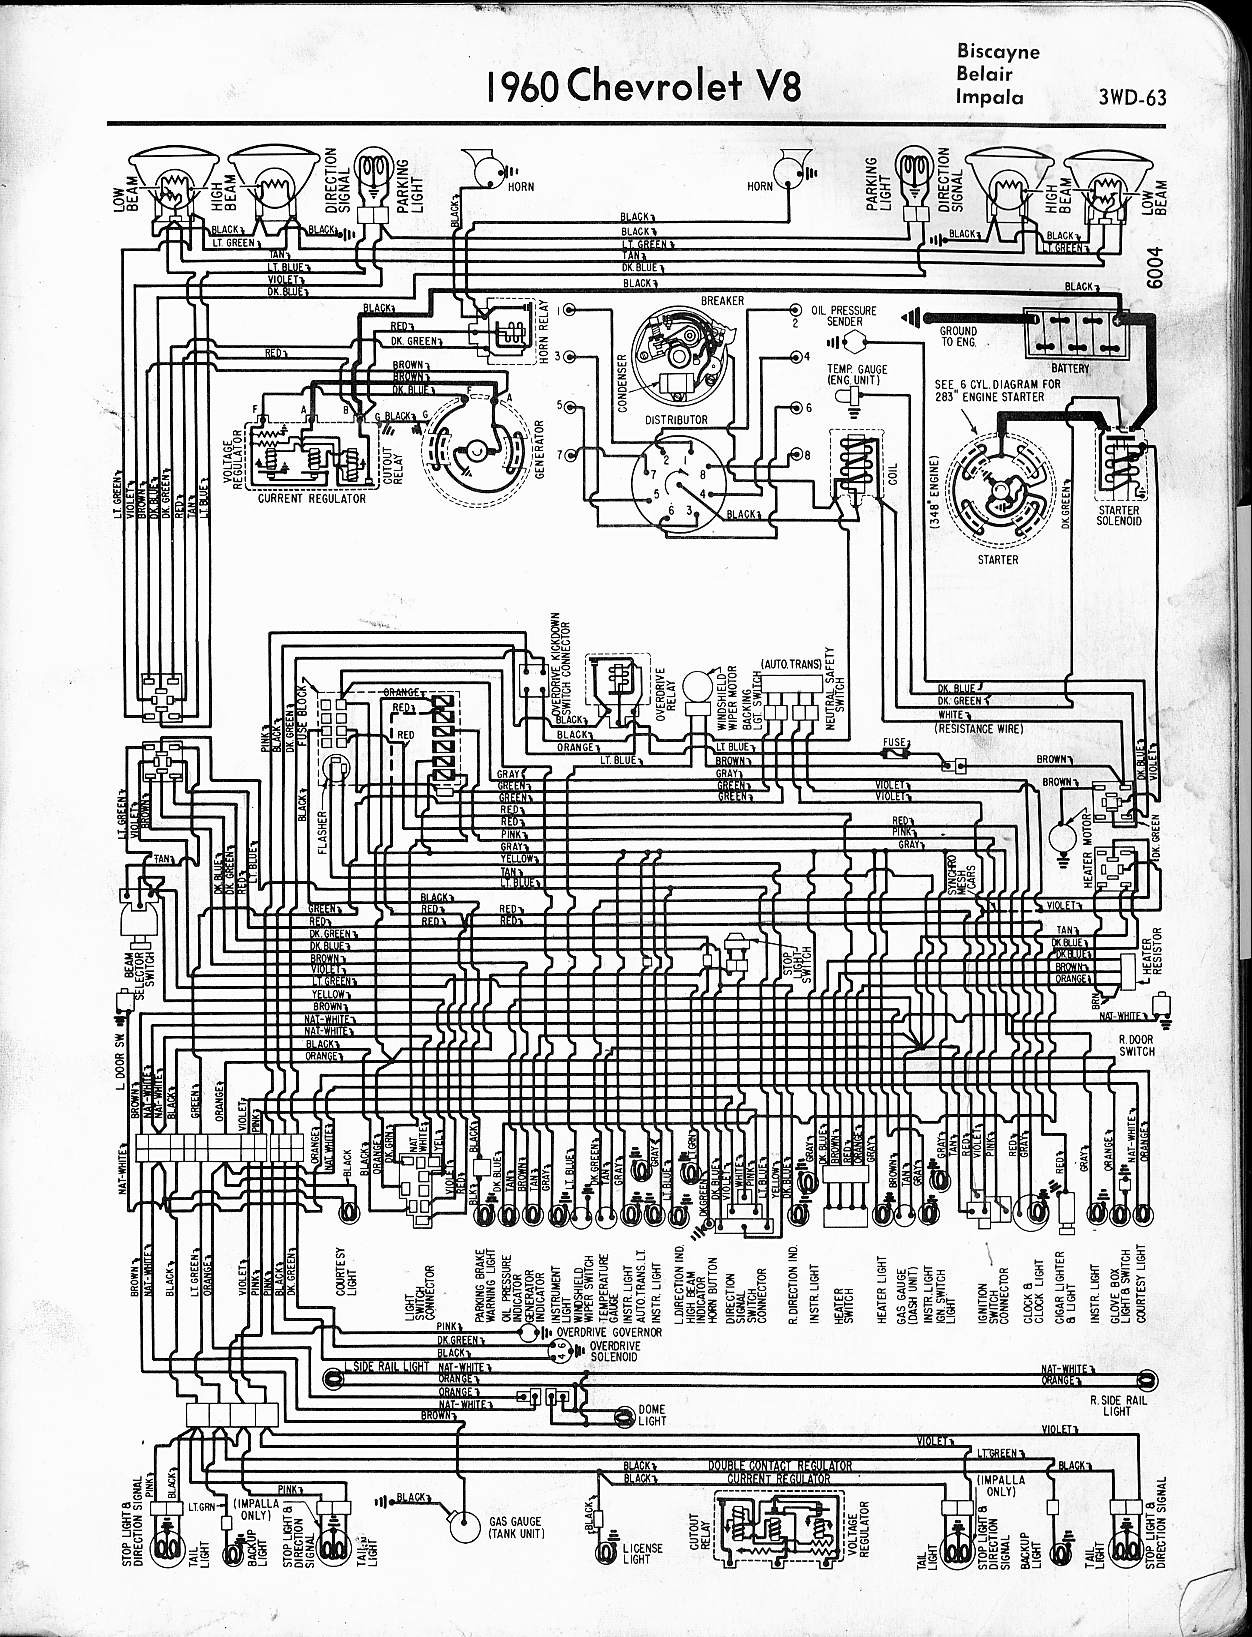 How Does A Engine Work Diagram 57 65 Chevy Wiring Diagrams Of How Does A Engine Work Diagram